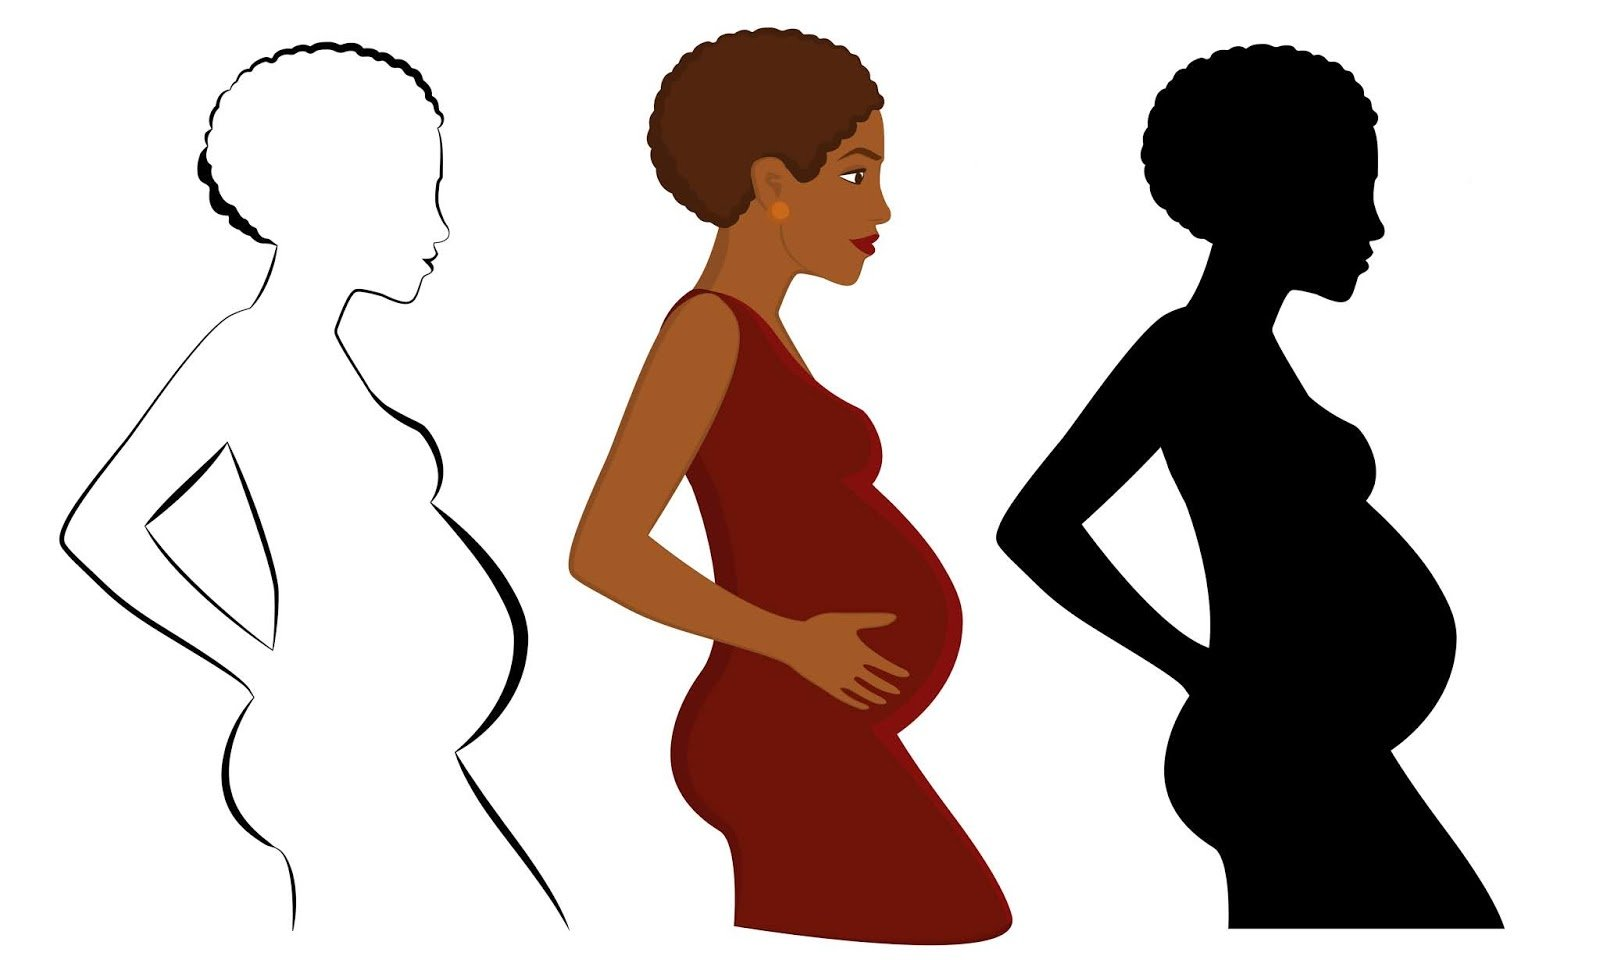 The Unbelievable Reasons Behind the Astonishing Rate of Black Maternal Death